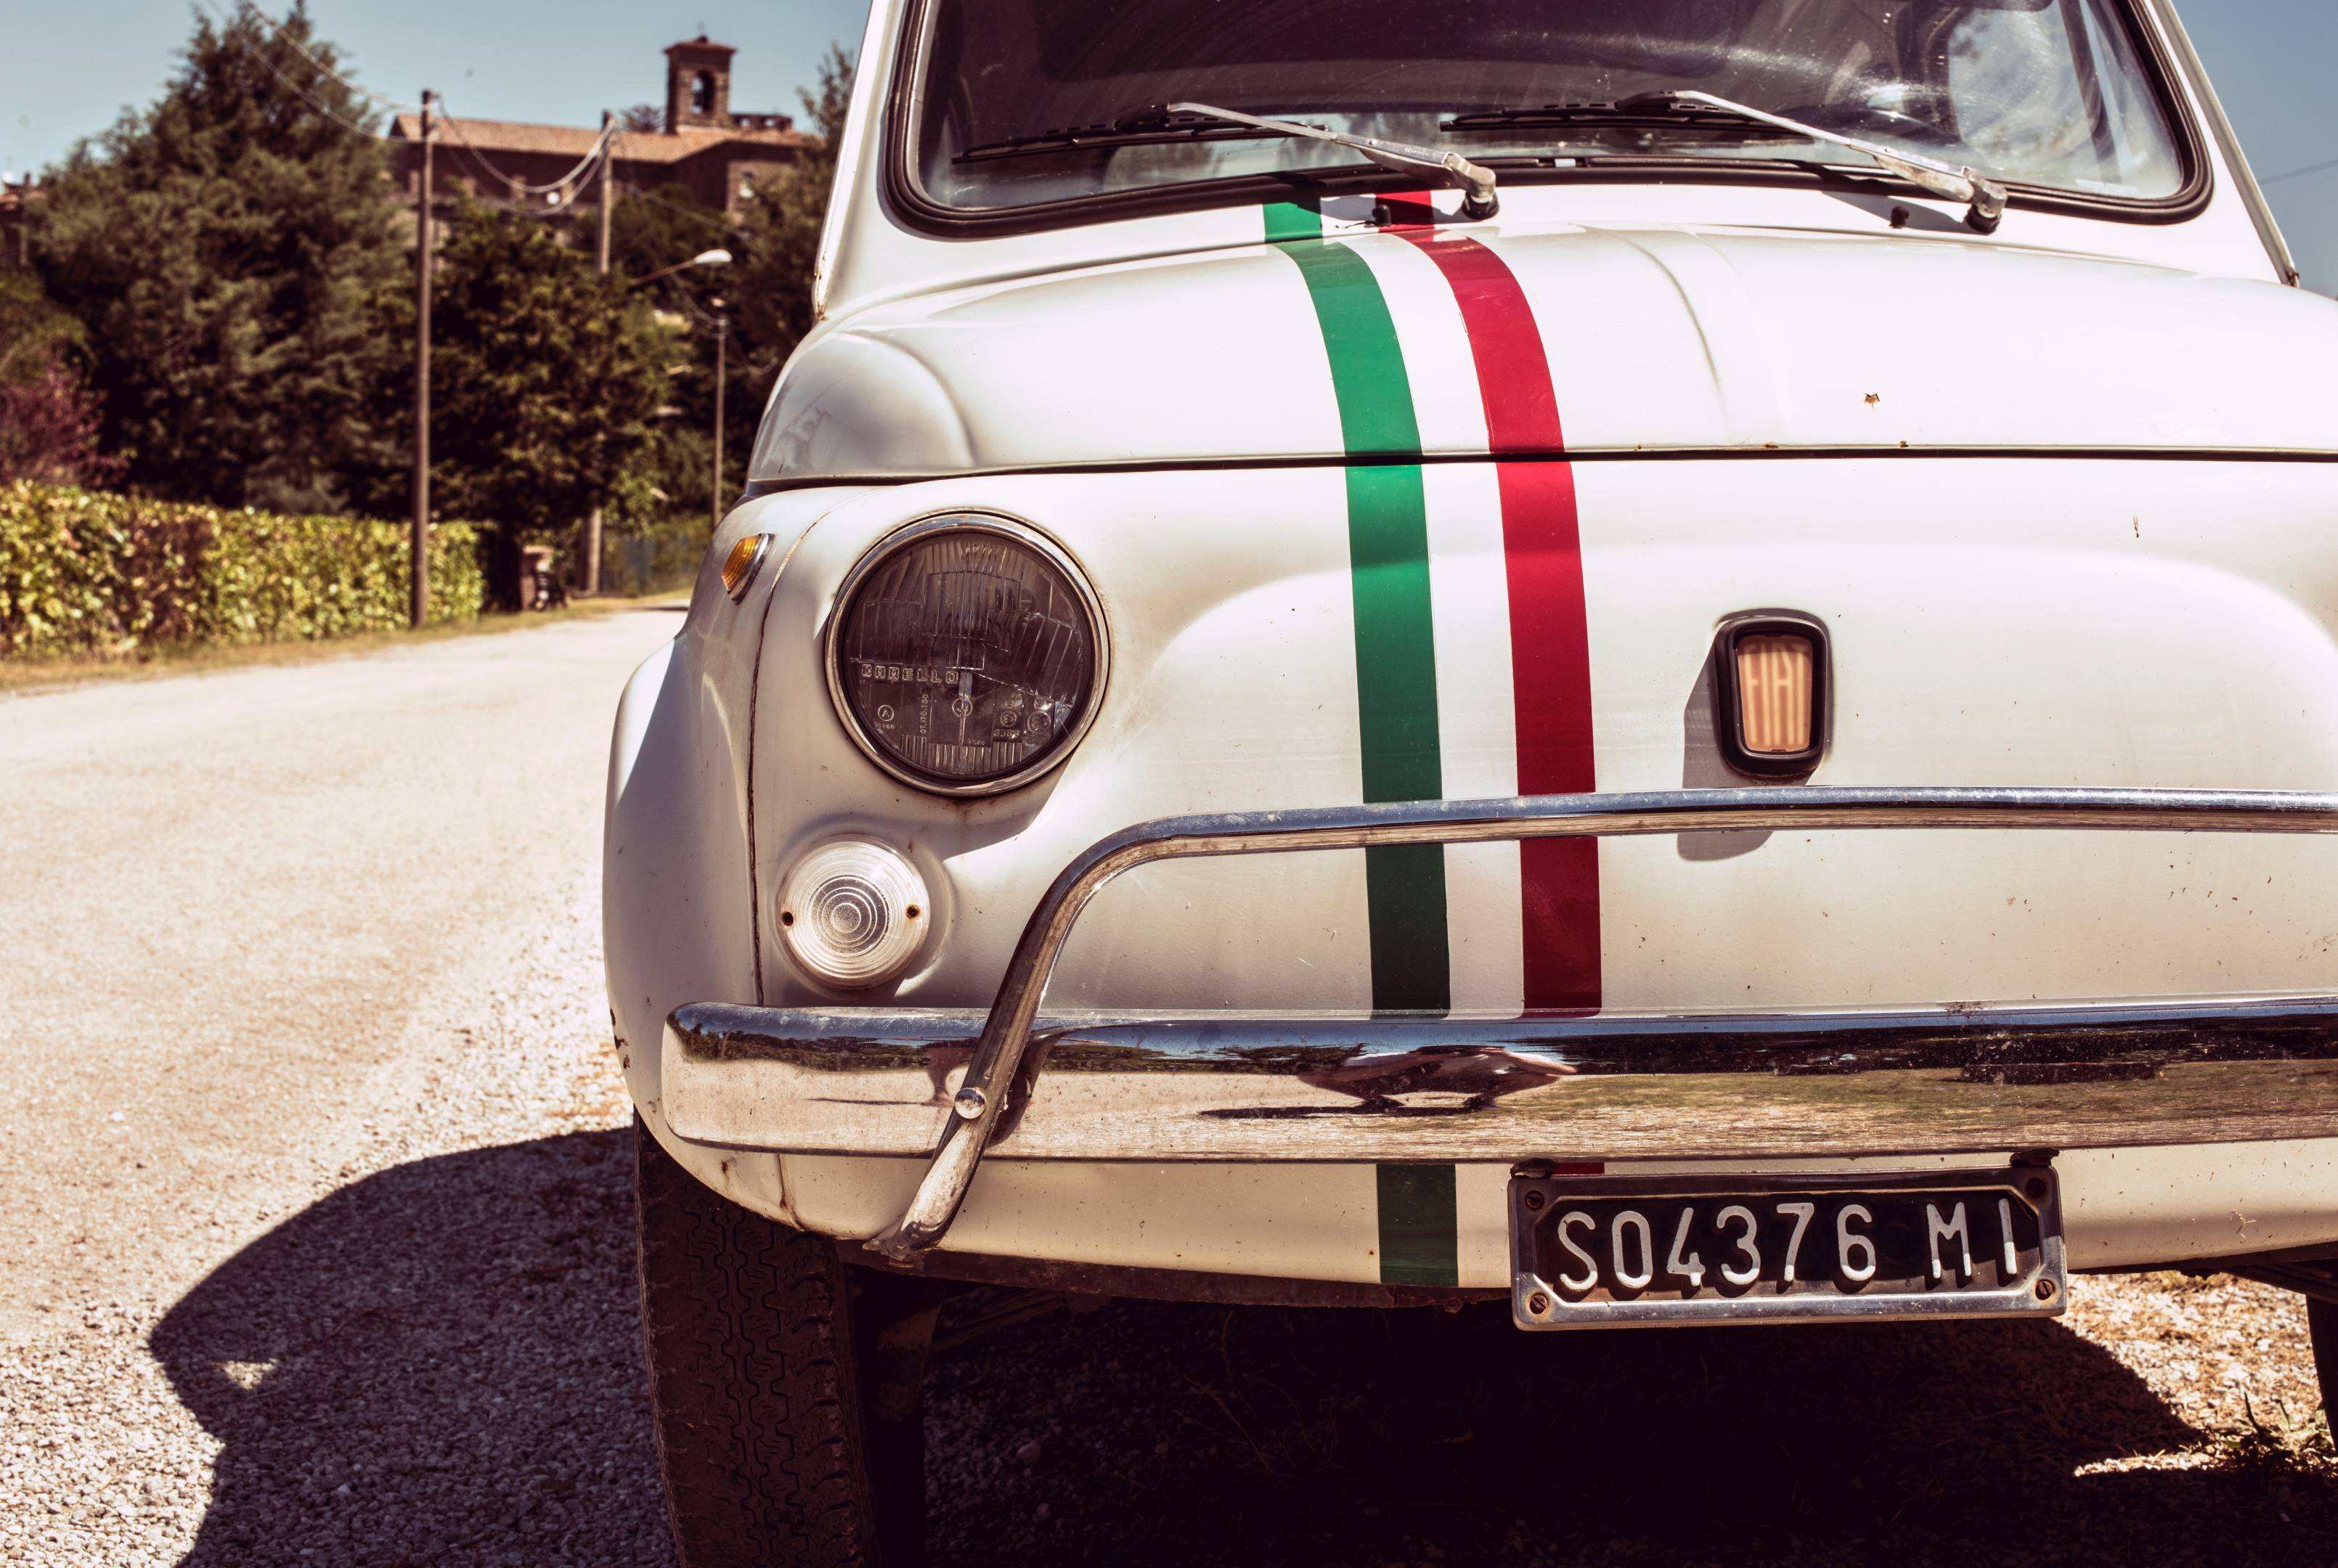 MADE IN ITALY IS THE BENEFIT PAR EXCELLENCE